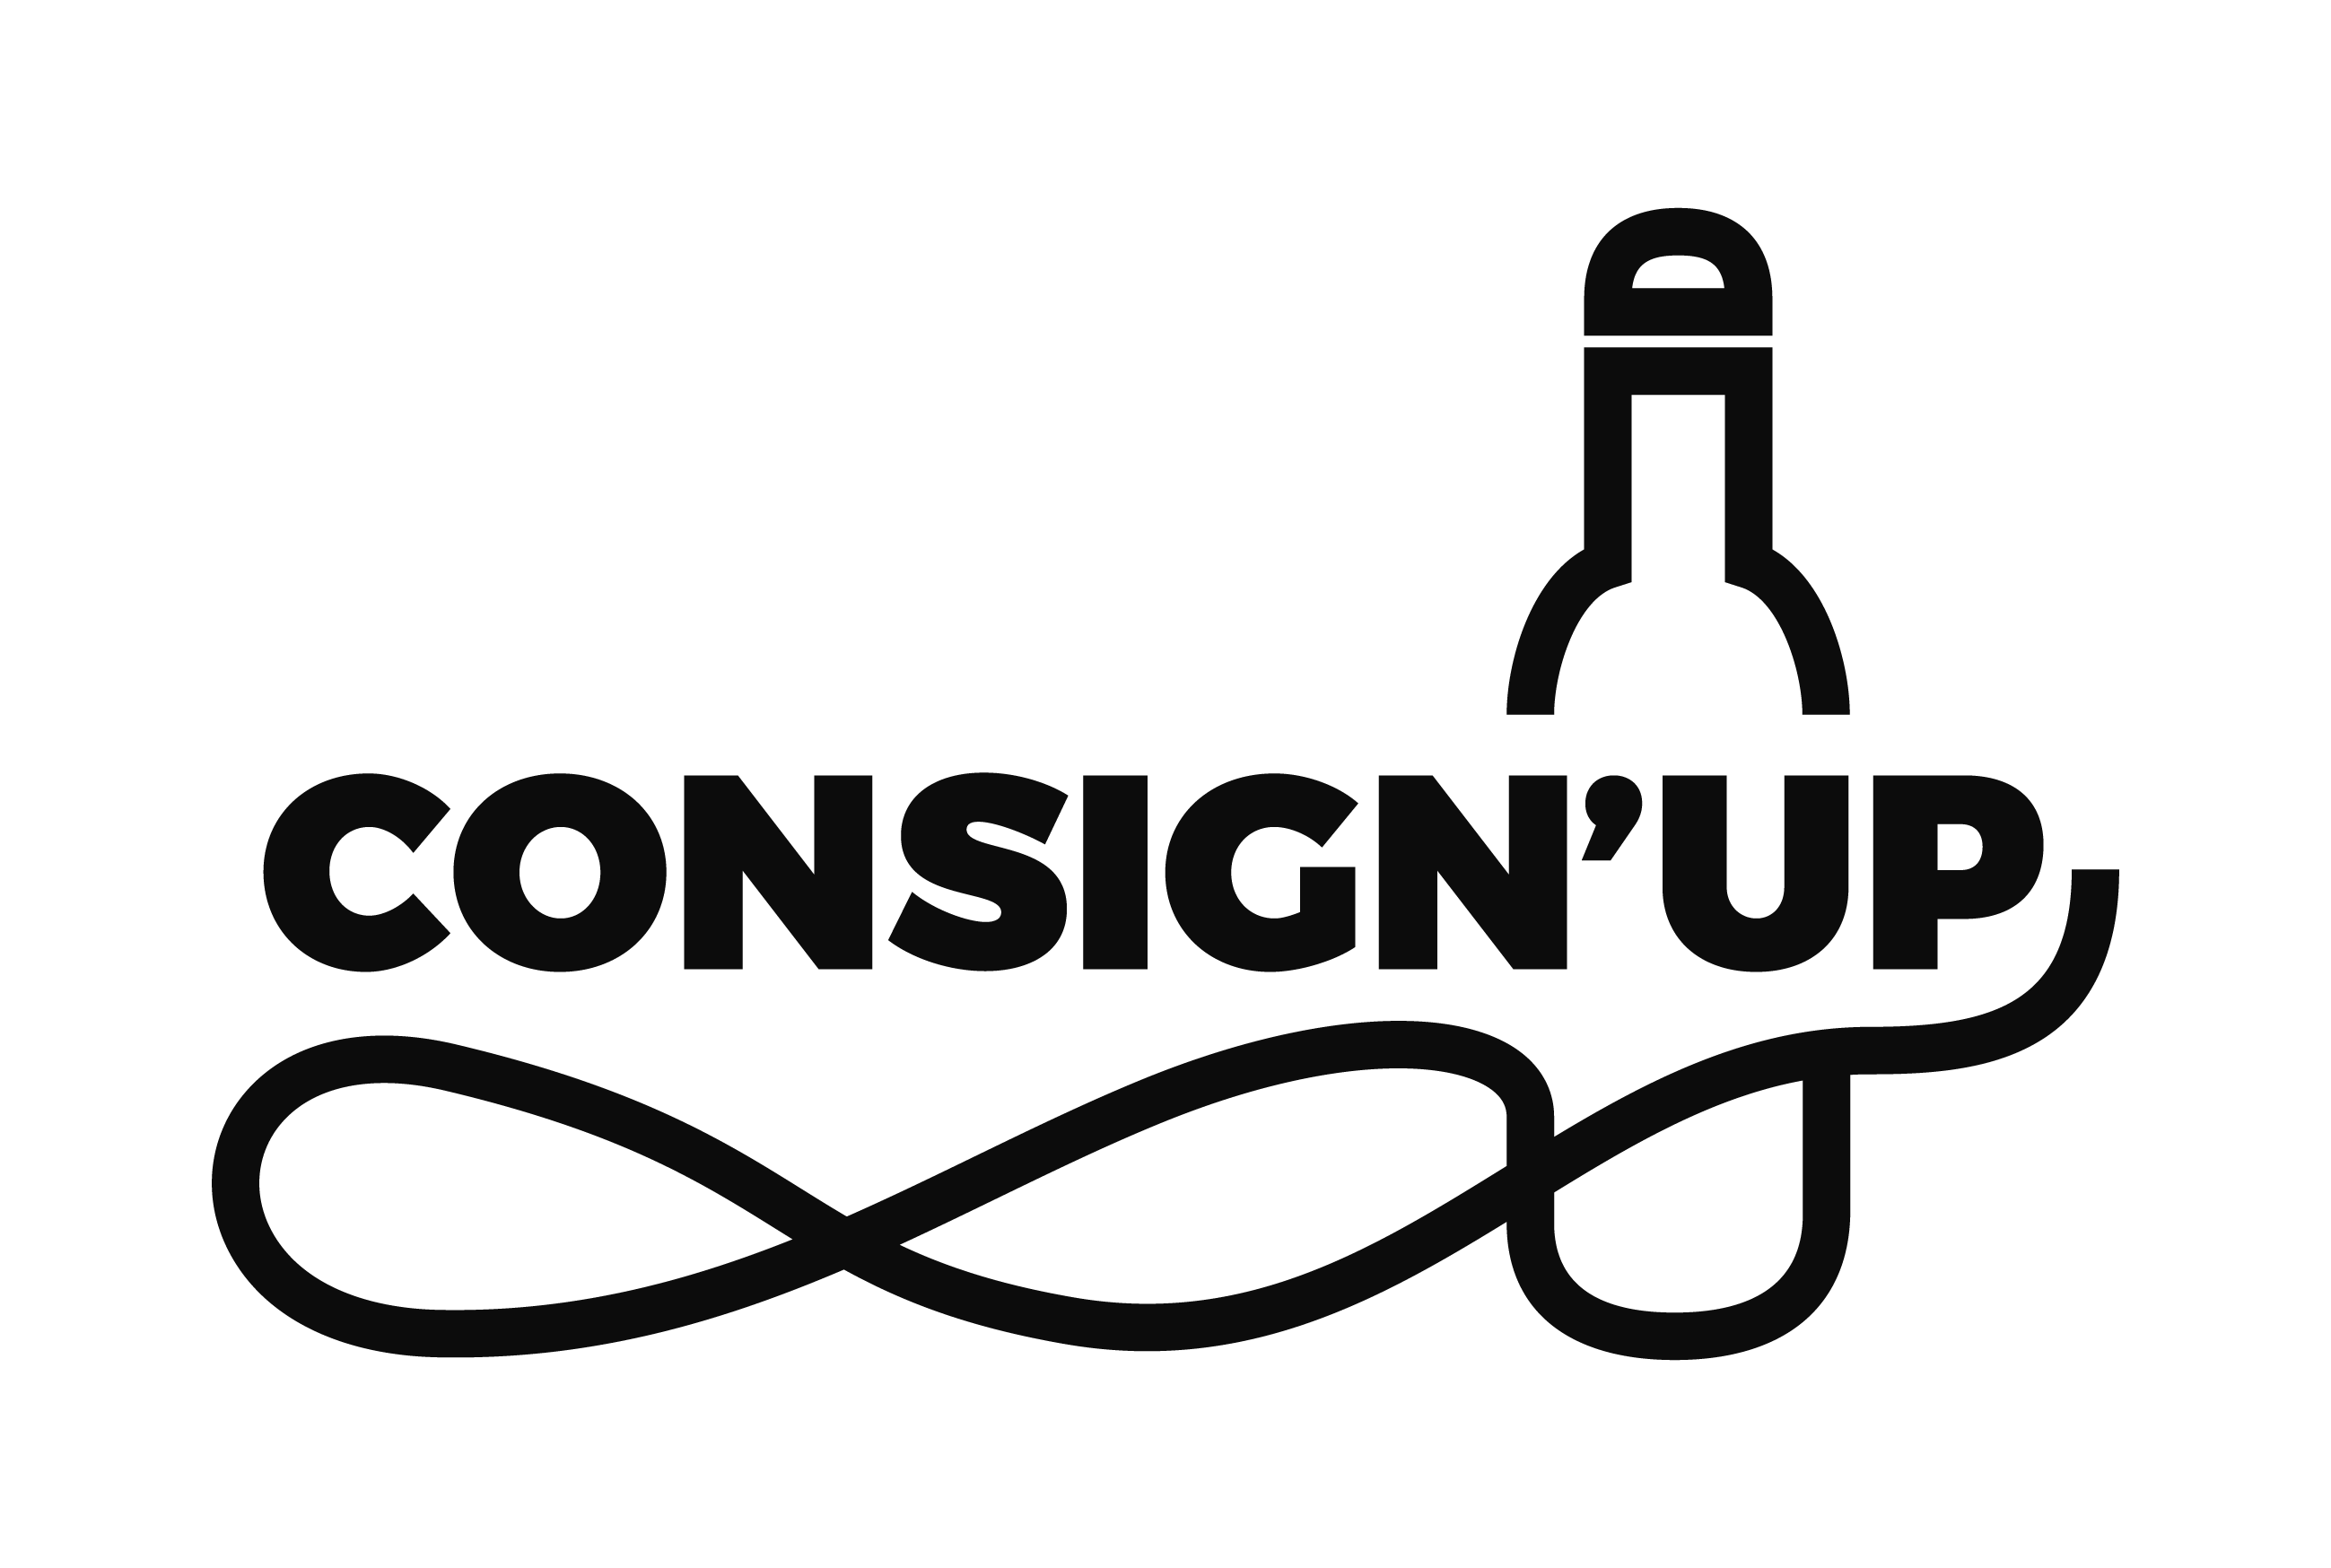 Consign Up